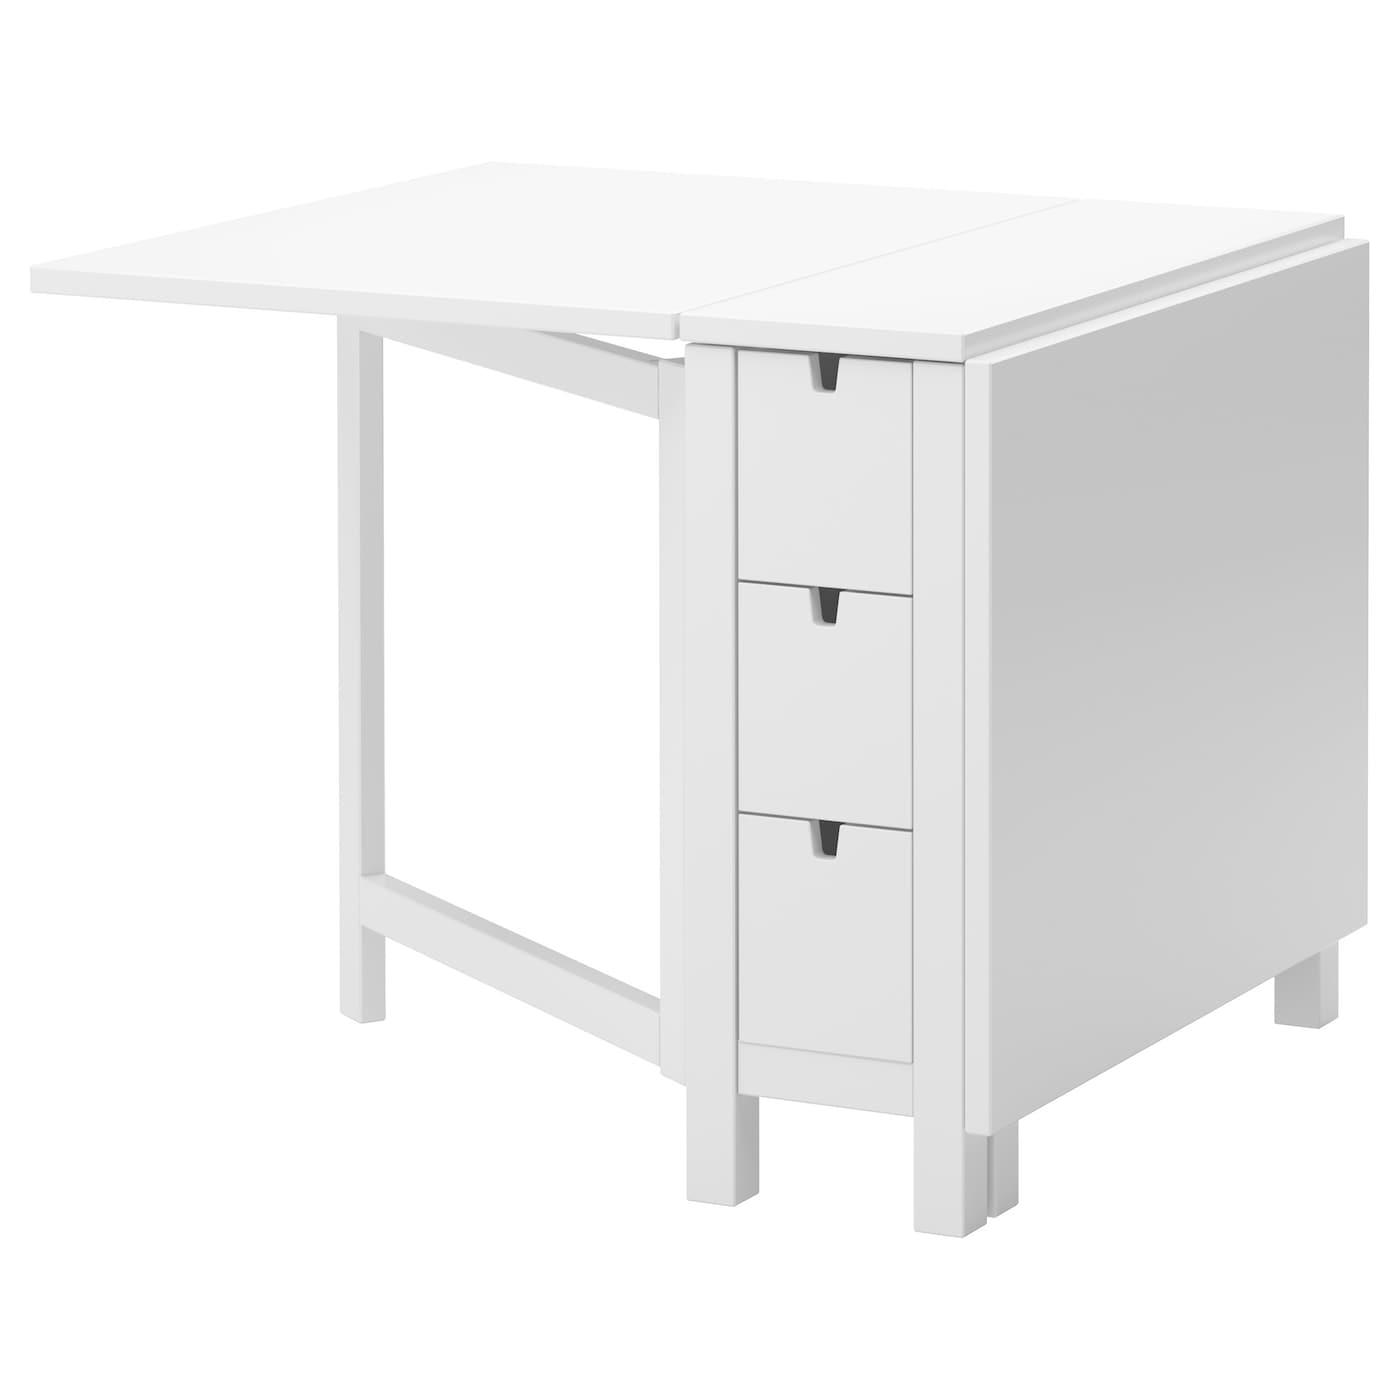 NORDEN Gateleg table White 2689152x80 cm IKEA : norden gateleg table white0104381pe251365s5 from www.ikea.com size 2000 x 2000 jpeg 106kB